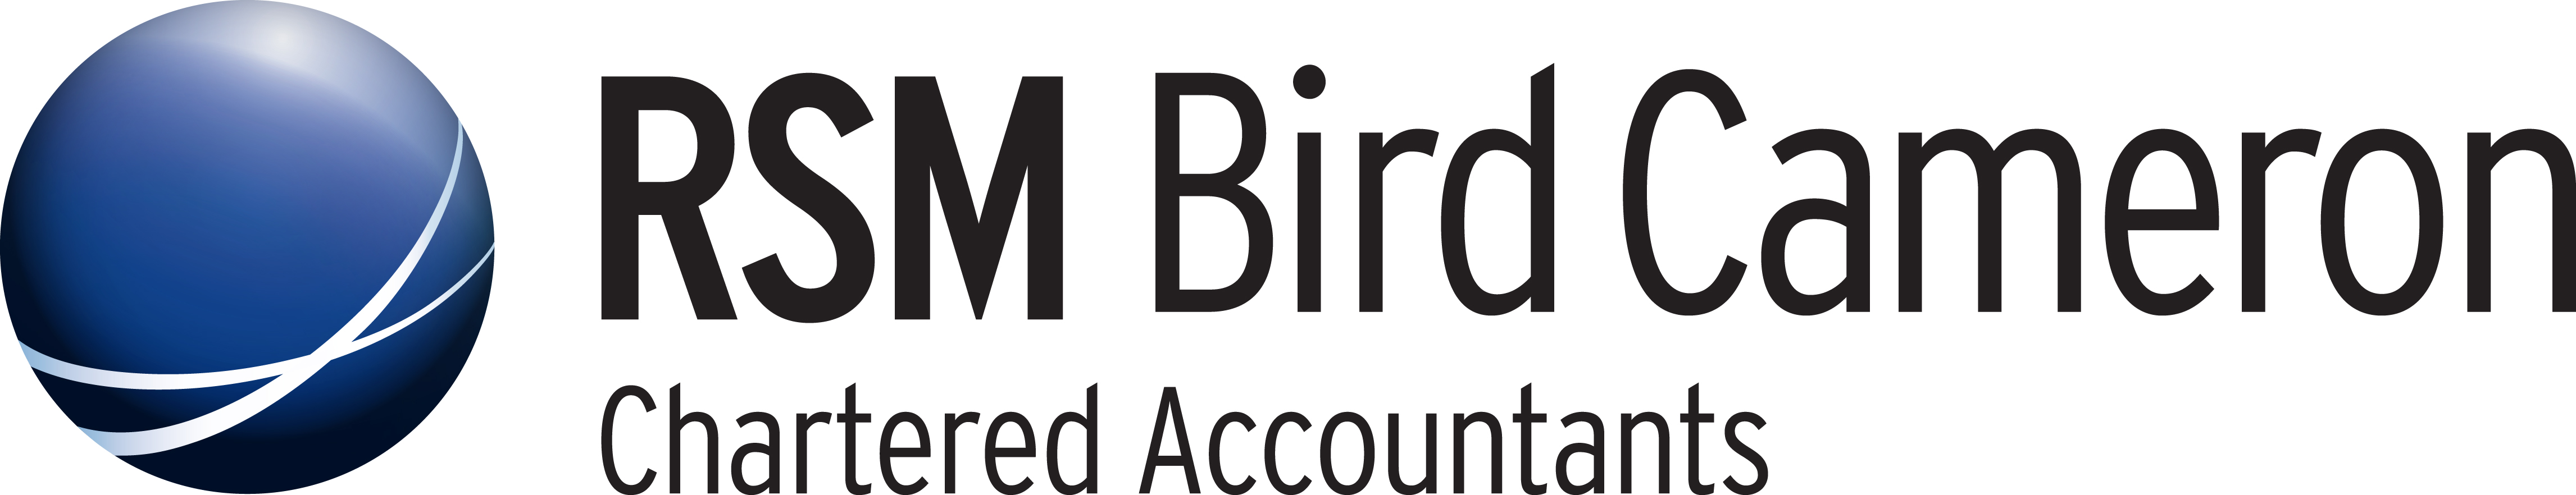 RSM-Bird-Cameron-Chartered-Accountants-Logo-CMYK